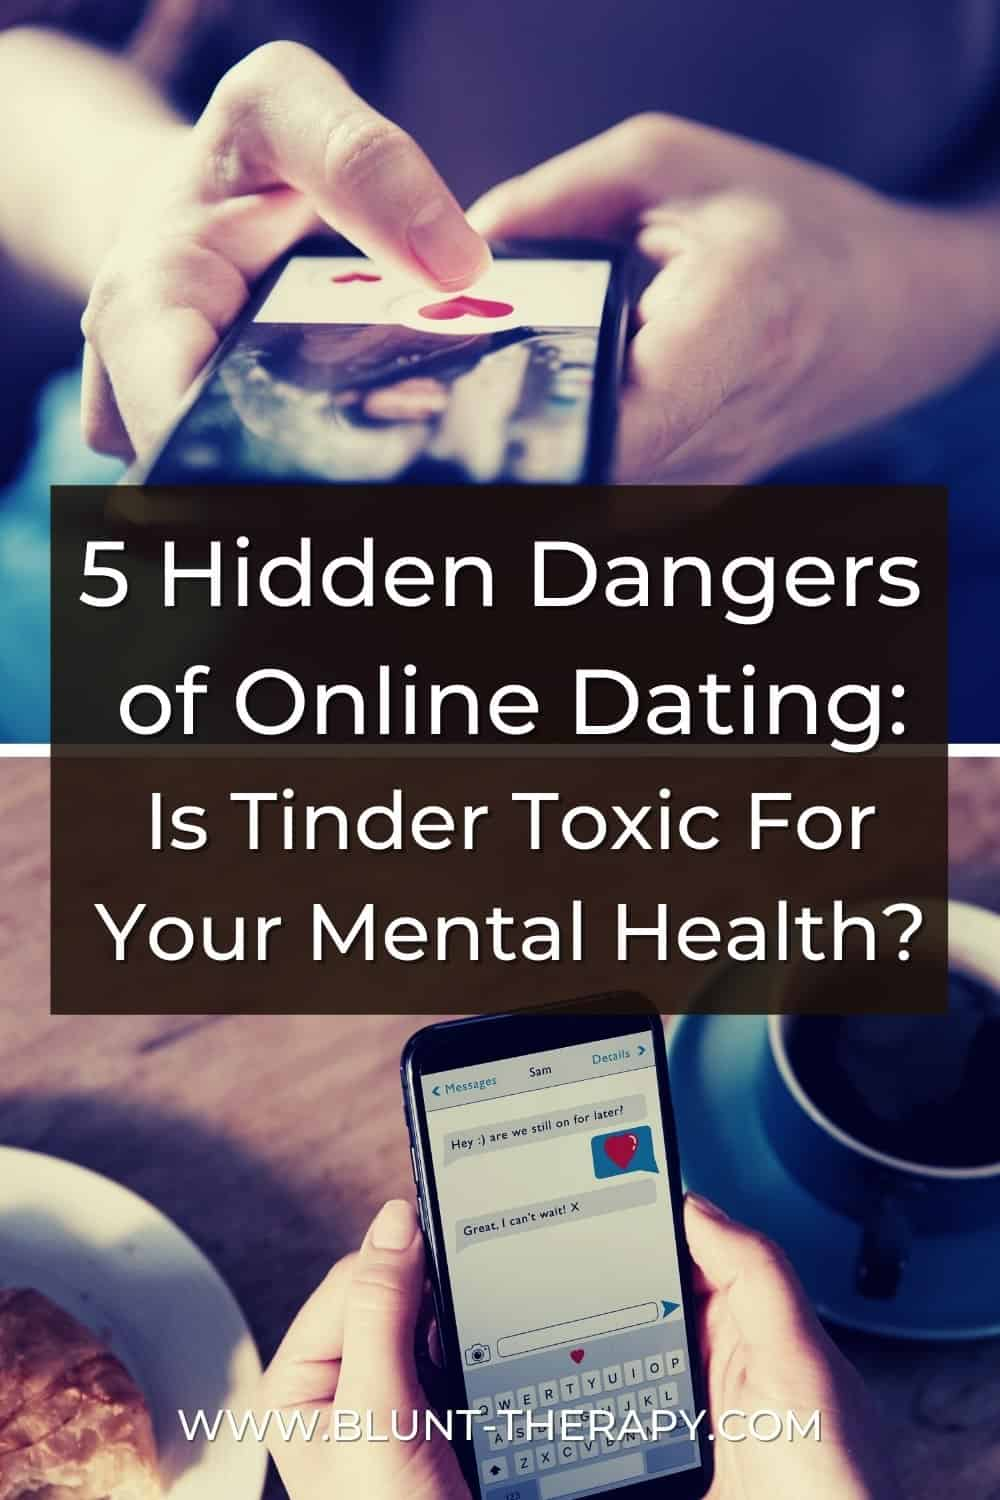 5 Hidden Dangers of Online Dating Apps Is Tinder Toxic For Your Mental Health